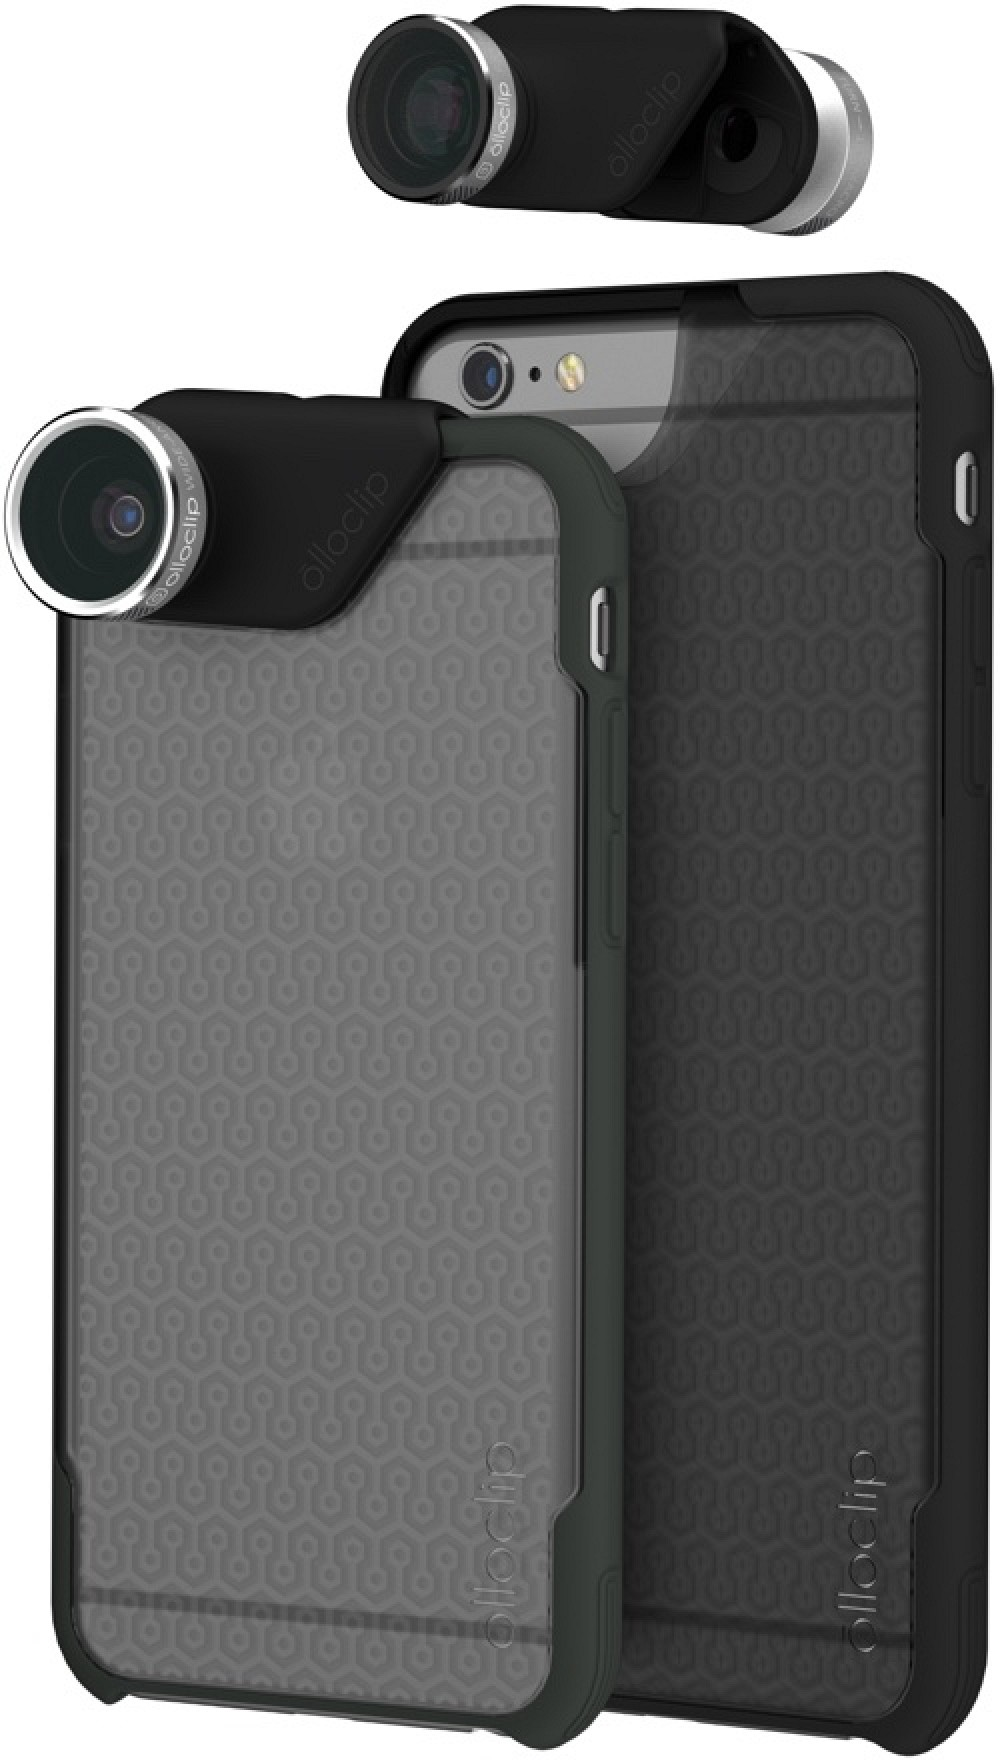 new style 50fa2 fe0f4 Olloclip Debuts iPhone 6 and 6 Plus 'OlloCase' Compatible With Lens ...